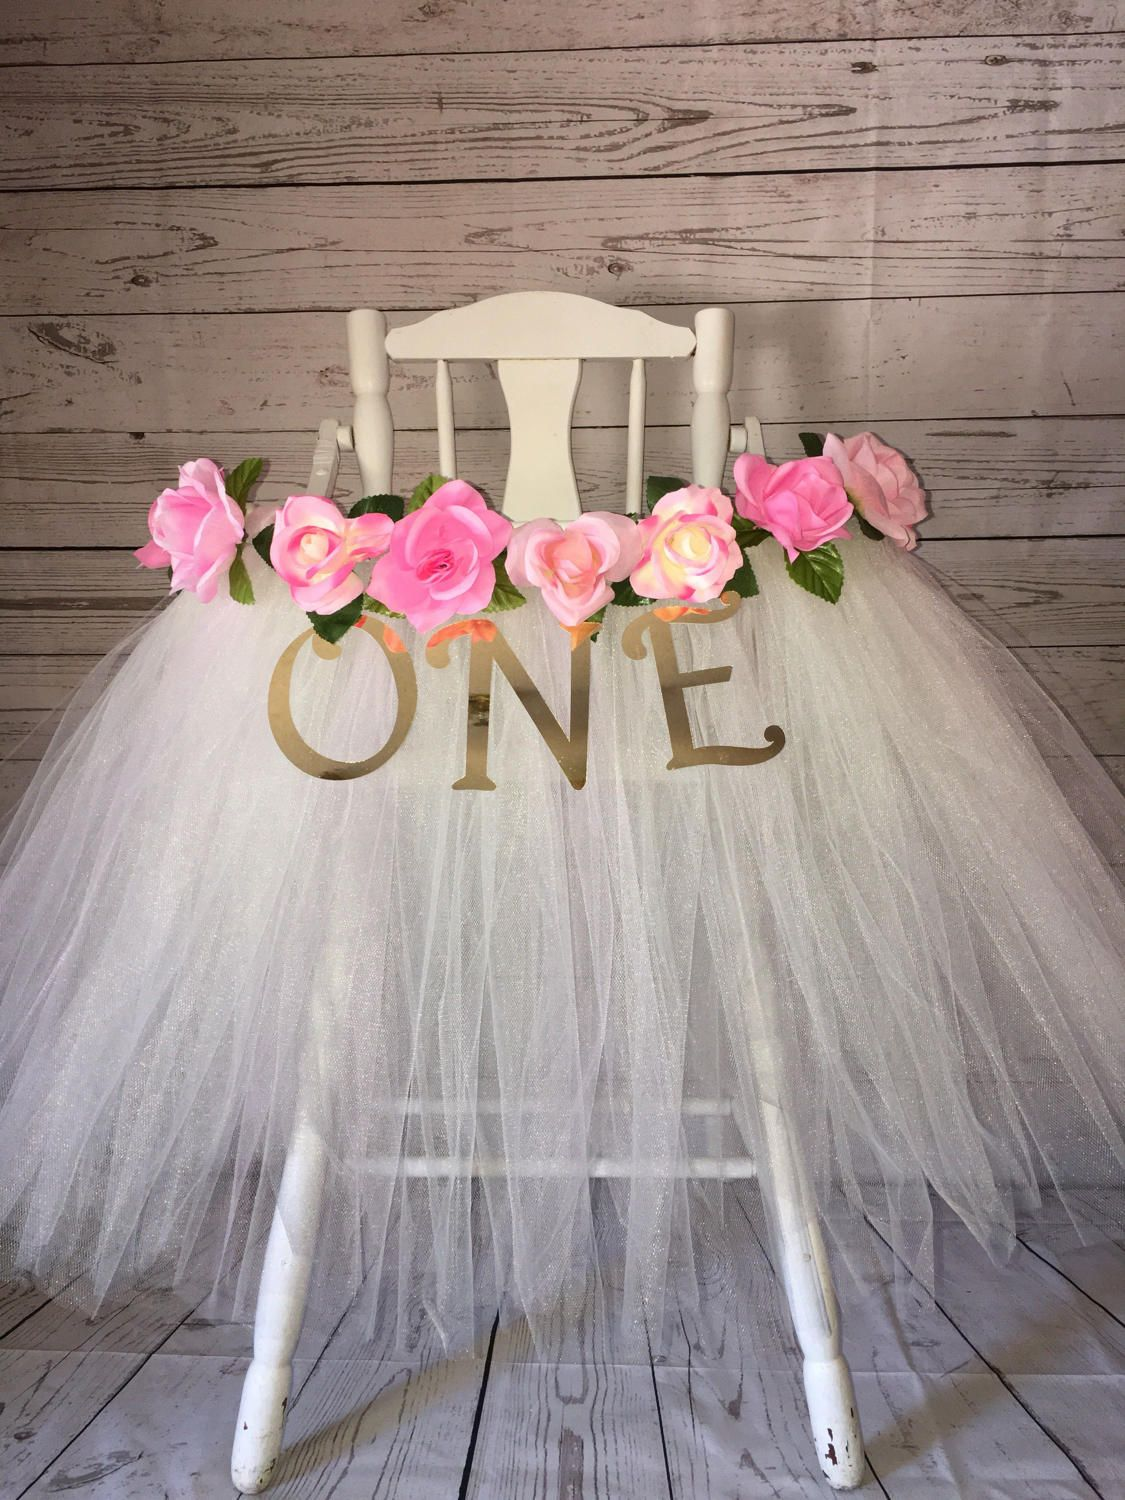 High Chair Tutu Target Foldable Lawn Chairs Skirt Ivory And Pink